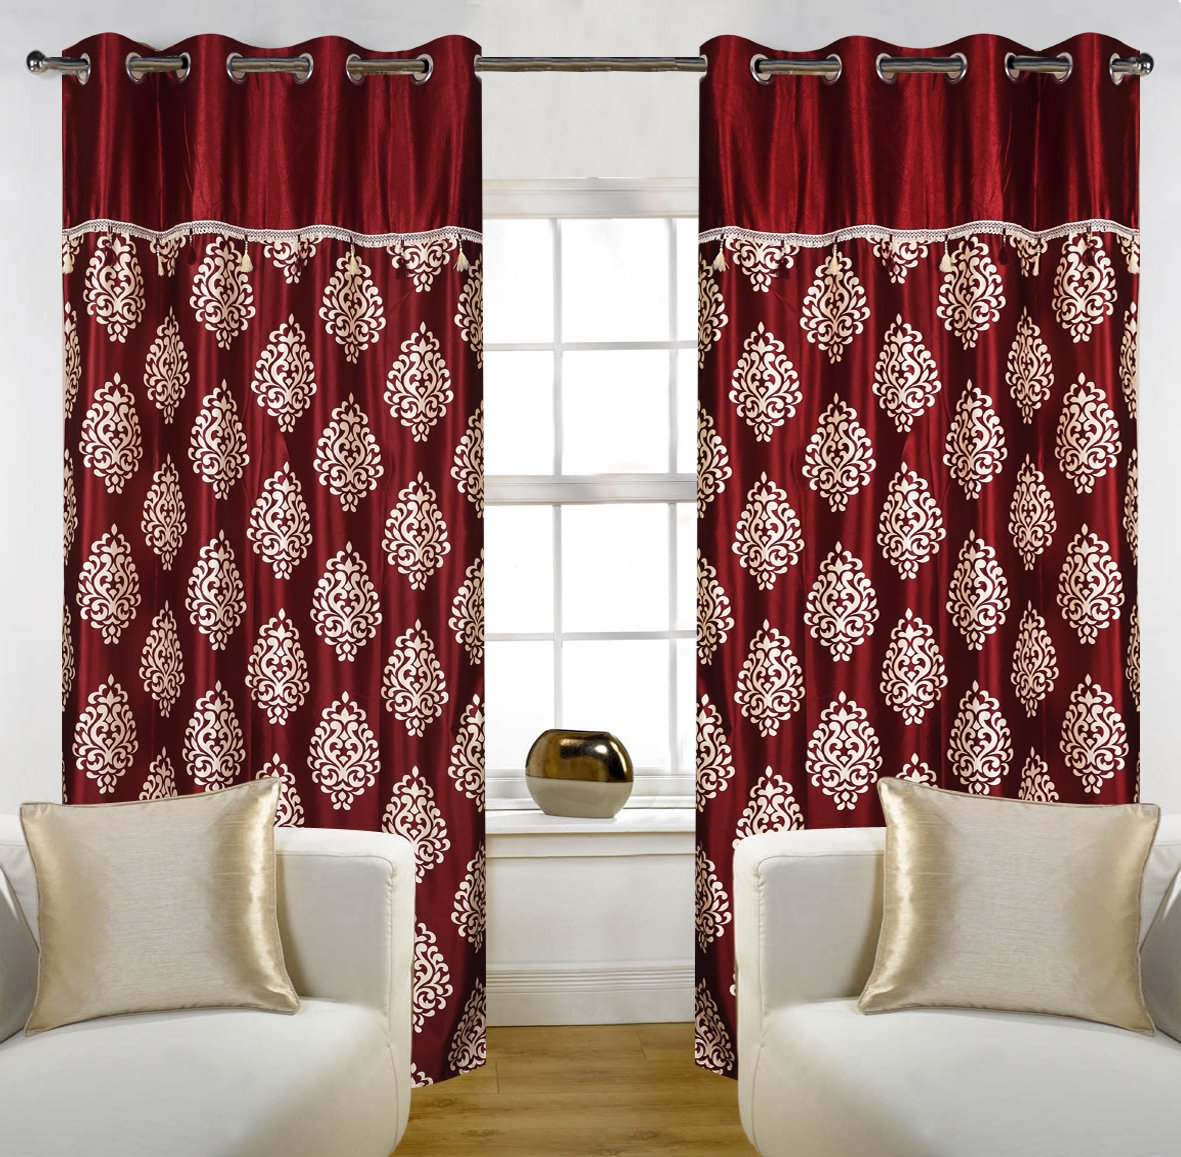 Design Door Curtains buy home candy eyelet fancy polyester 2 piece door curtain set 84x48 maroon online at low prices in india amazon in